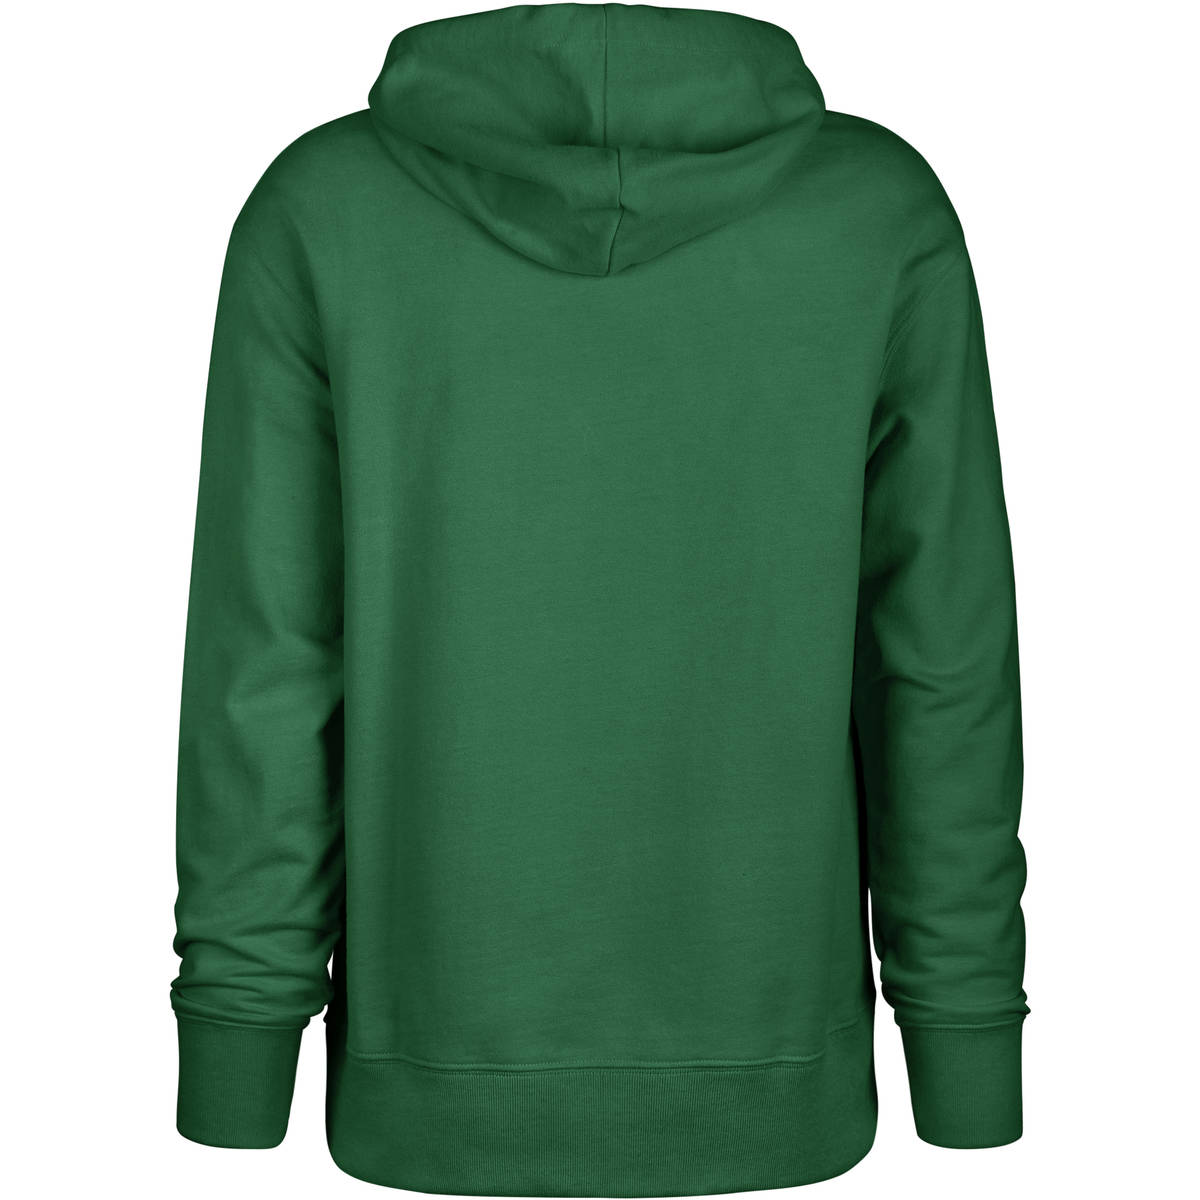 mainAdults Striker Hoody2